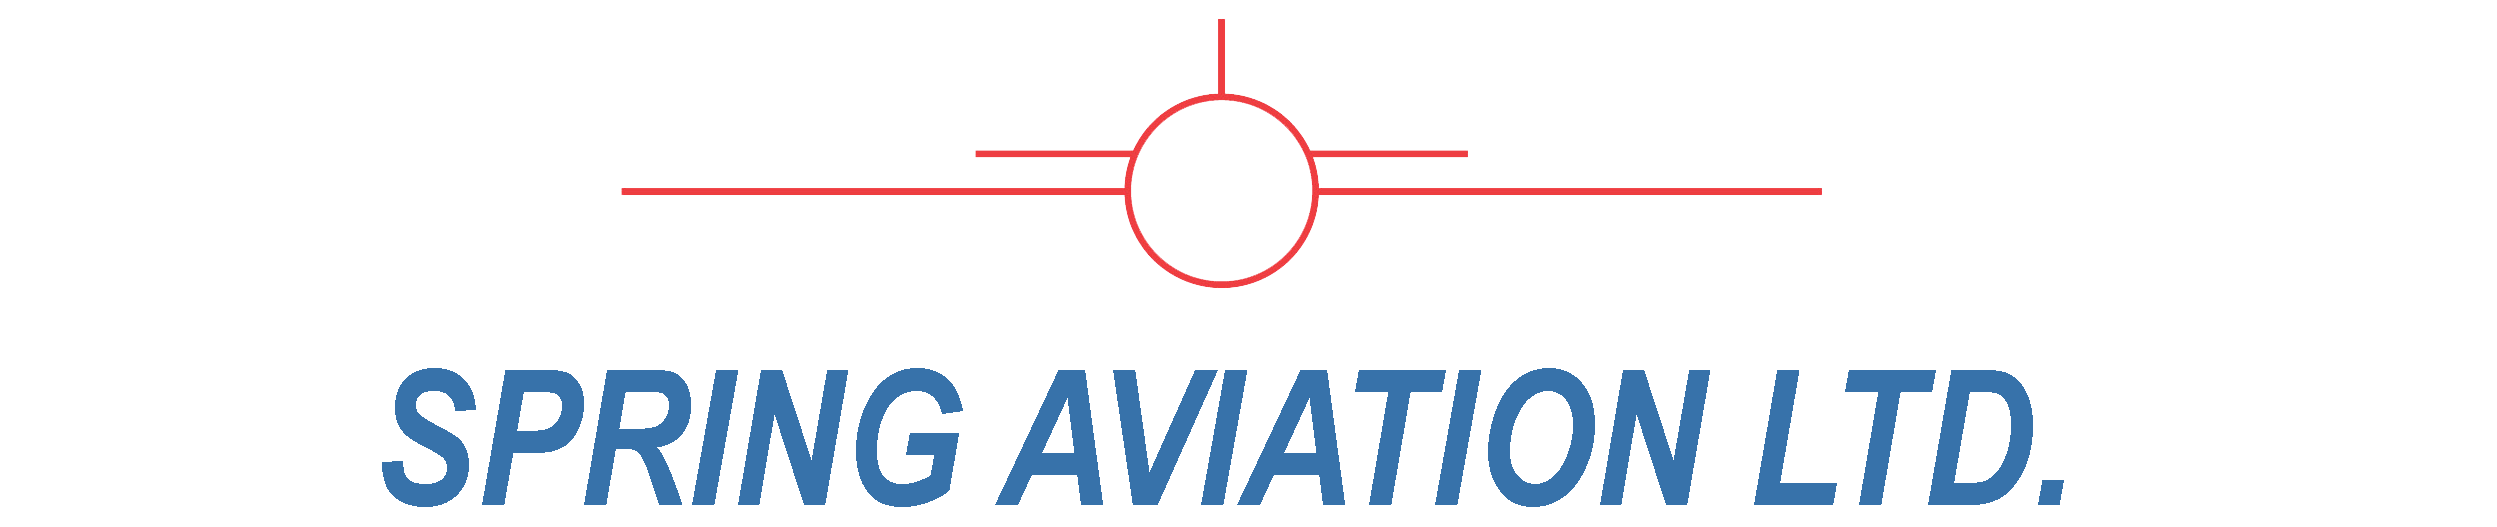 Spring Aviation Ltd.